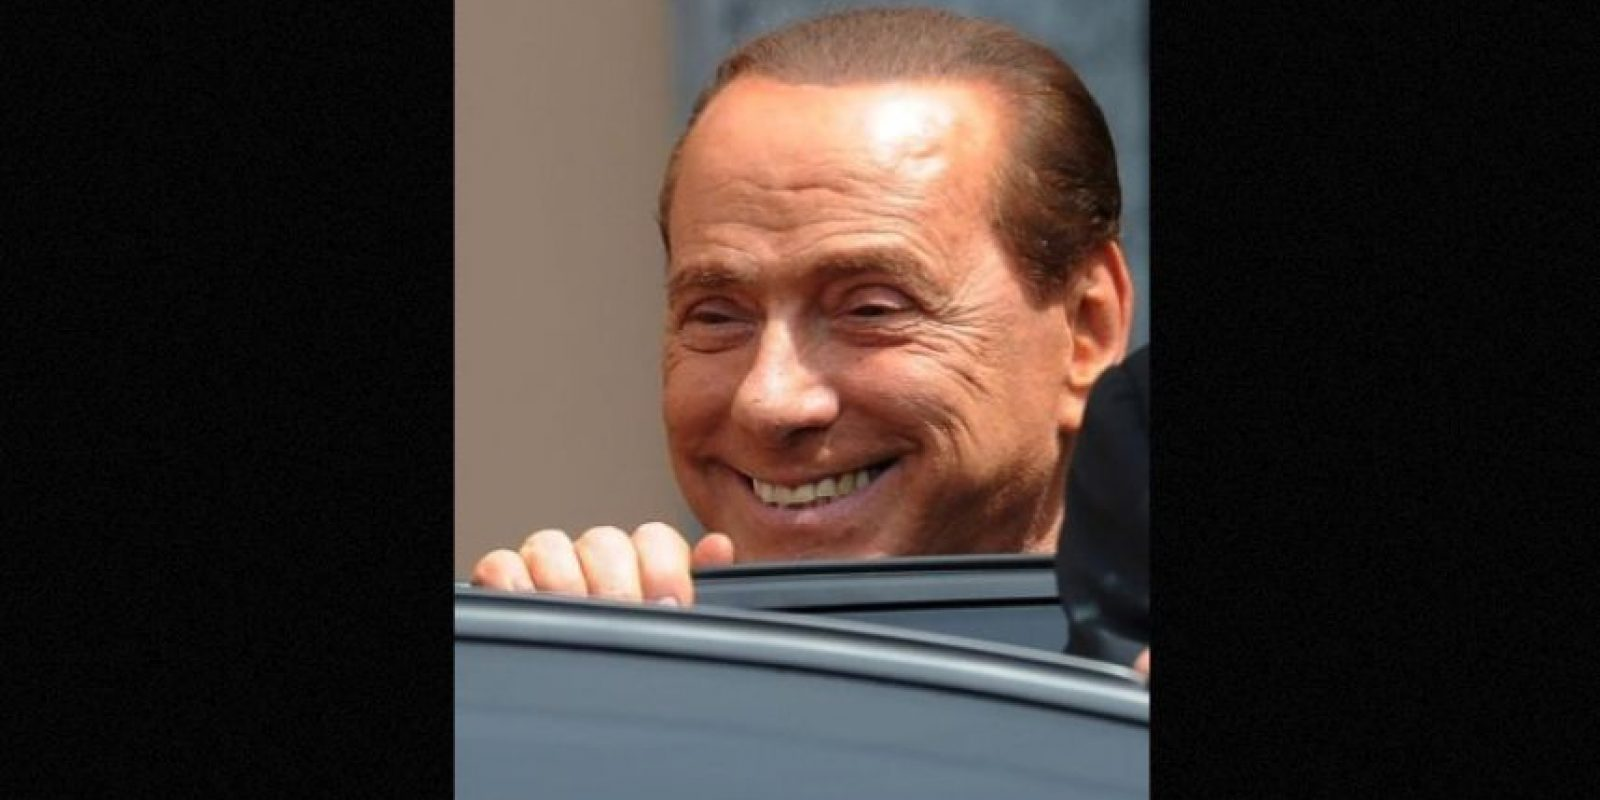 2. Silvio Berlusconi Foto: Getty Images